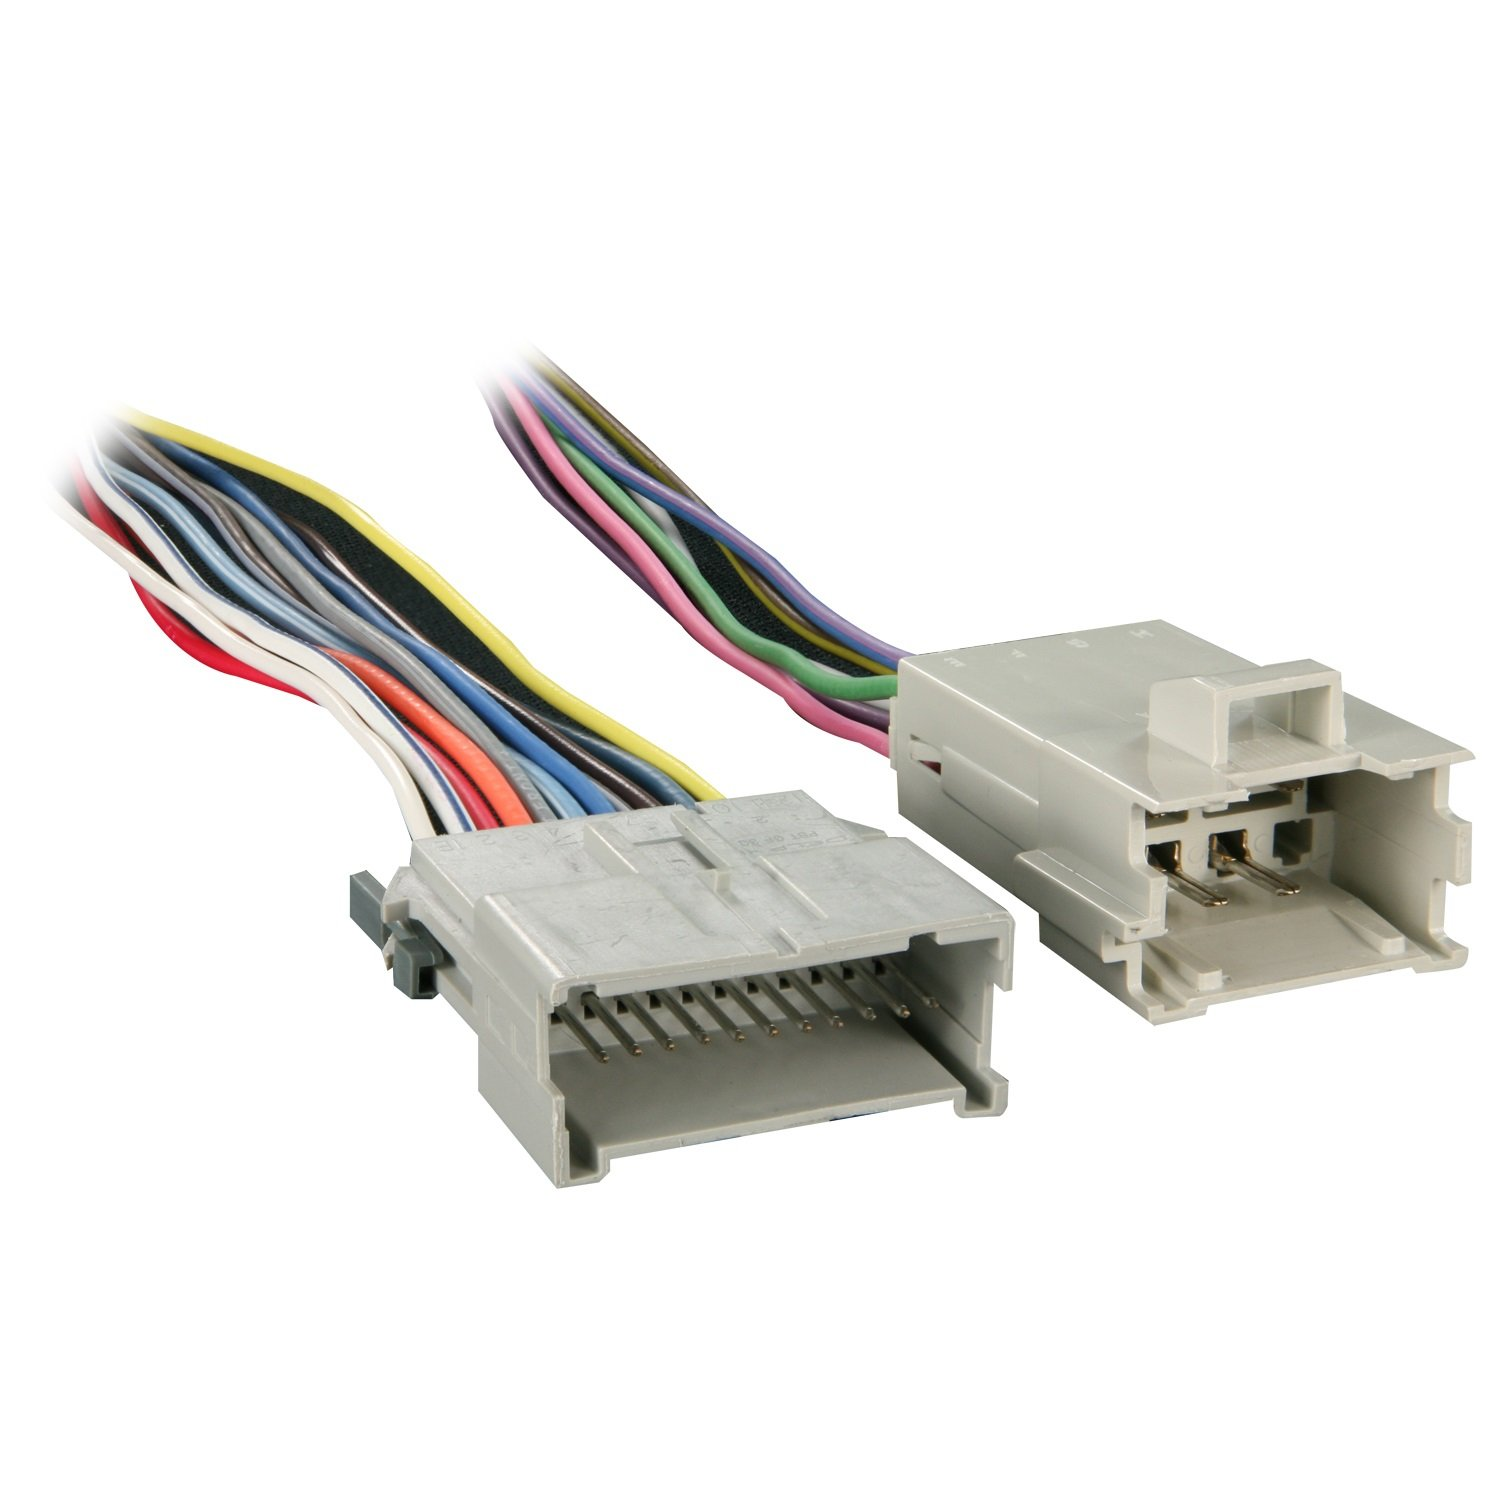 71gEc%2BOPJ8L._SL1500_ amazon com metra 70 2054 factory amplifier bypass harness for GM Wiring Color Codes at bakdesigns.co